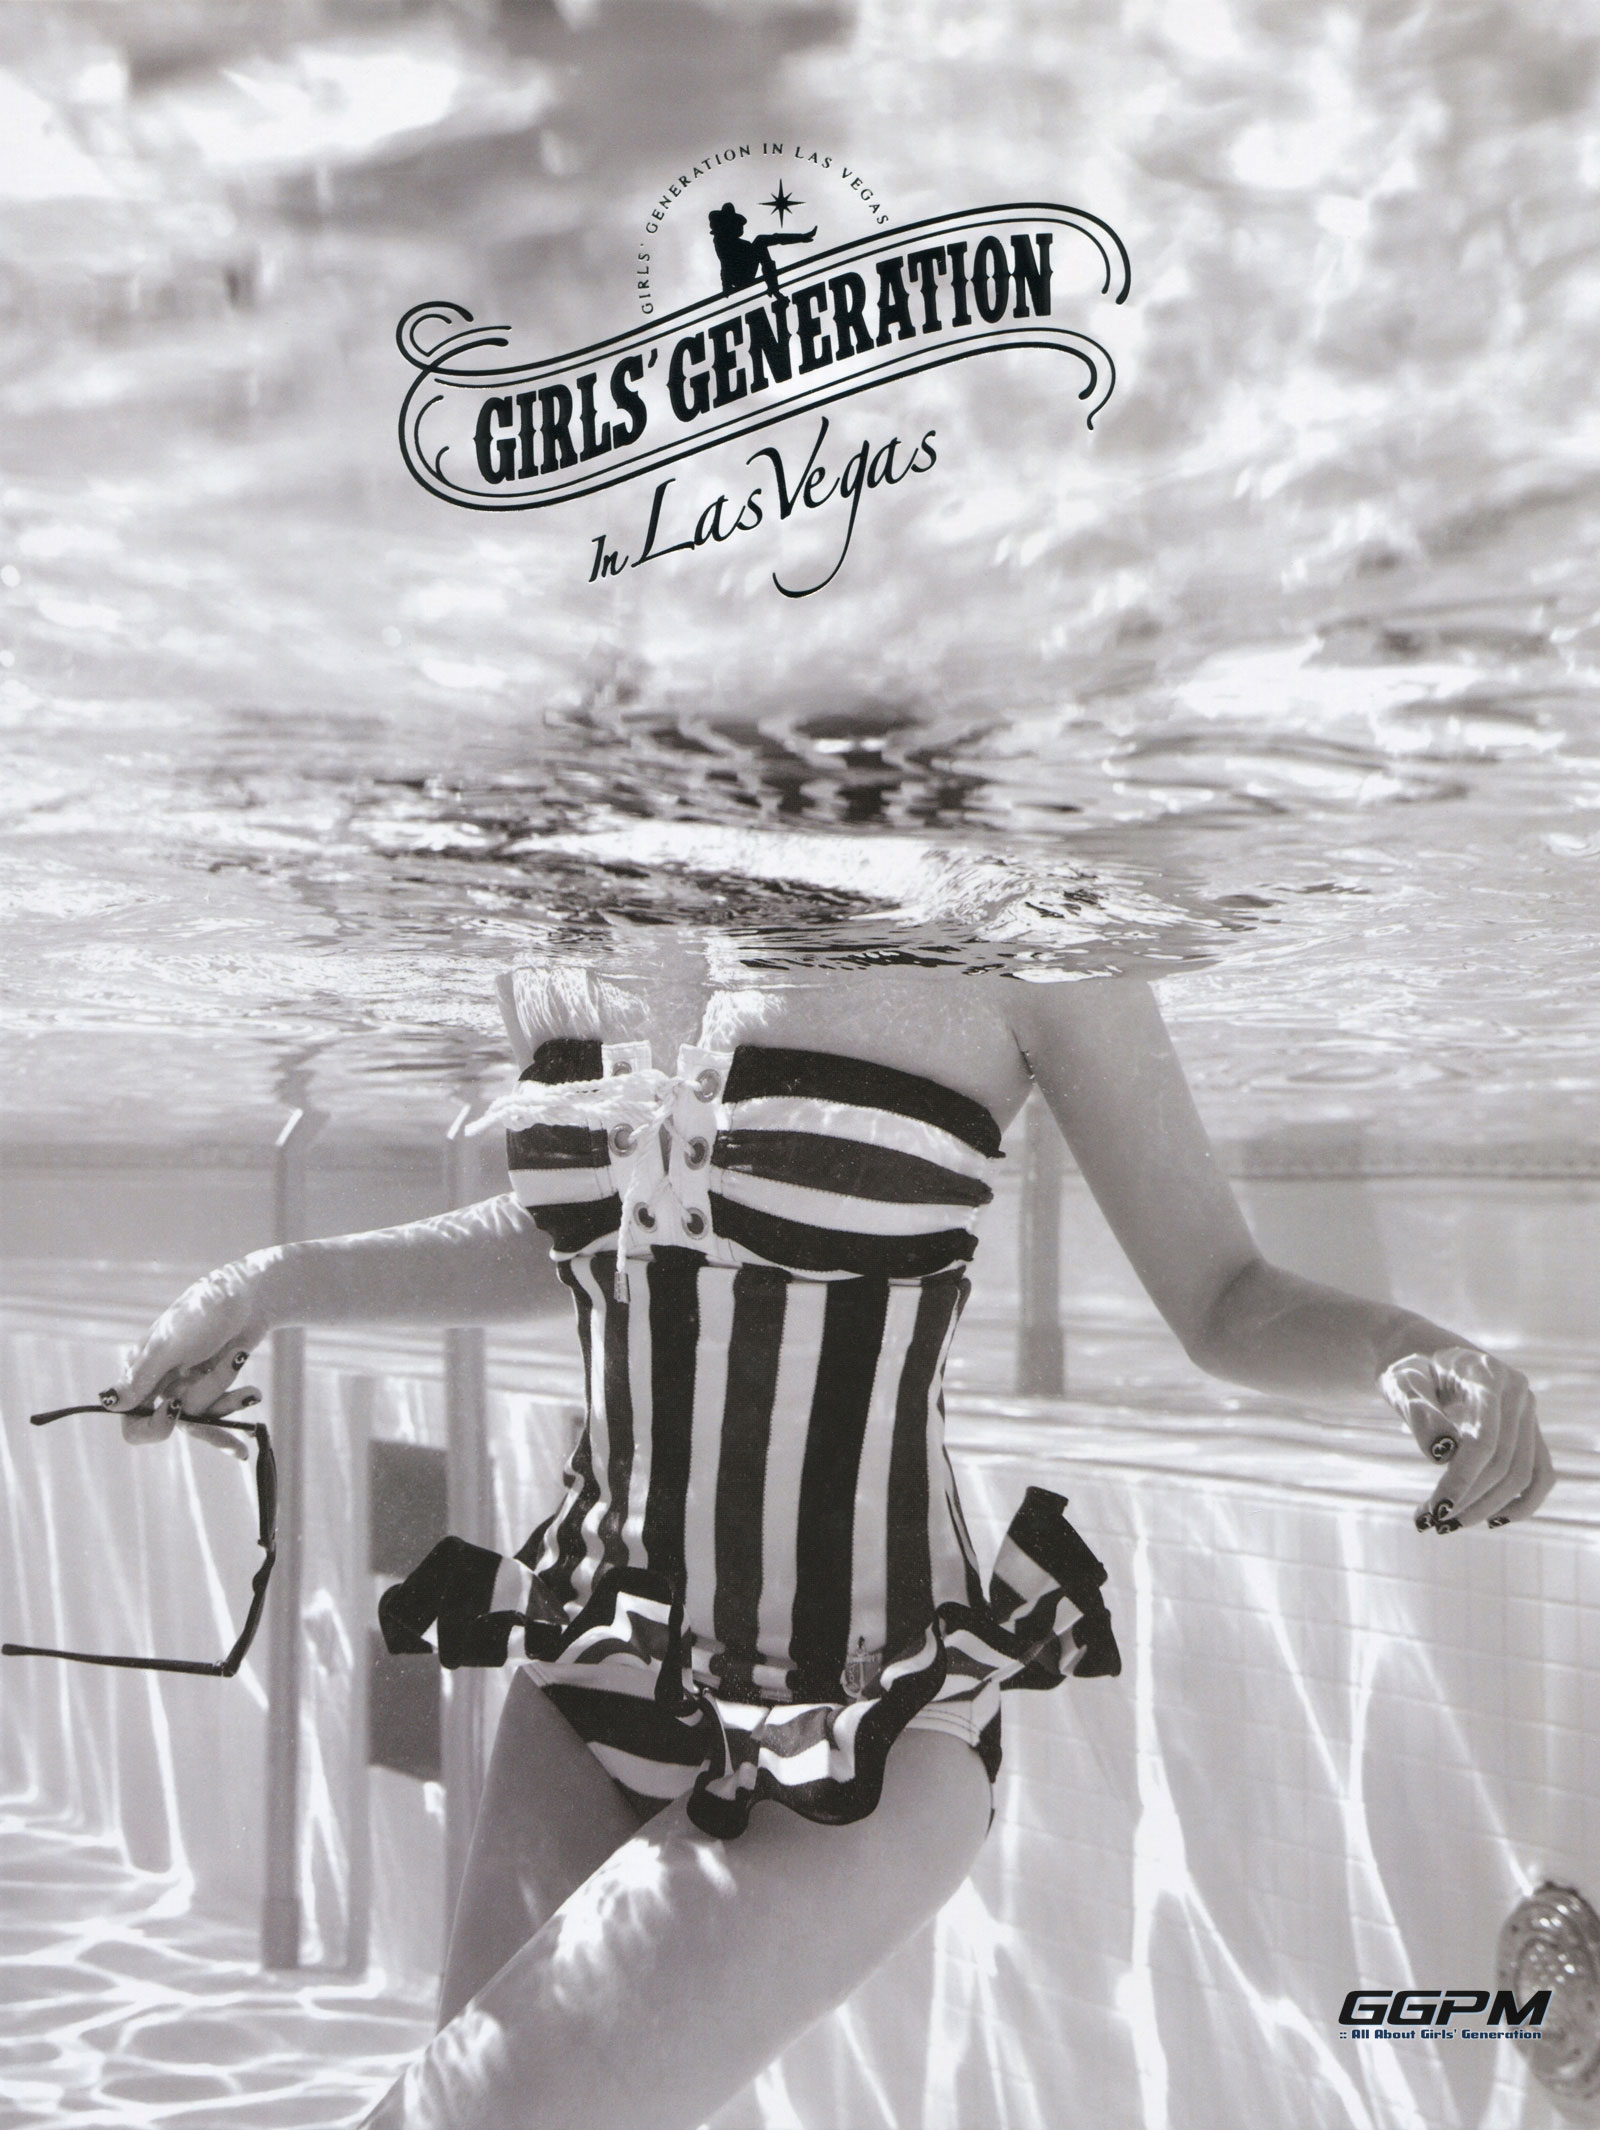 Girls Generation SNSD in Las Vegas photobook